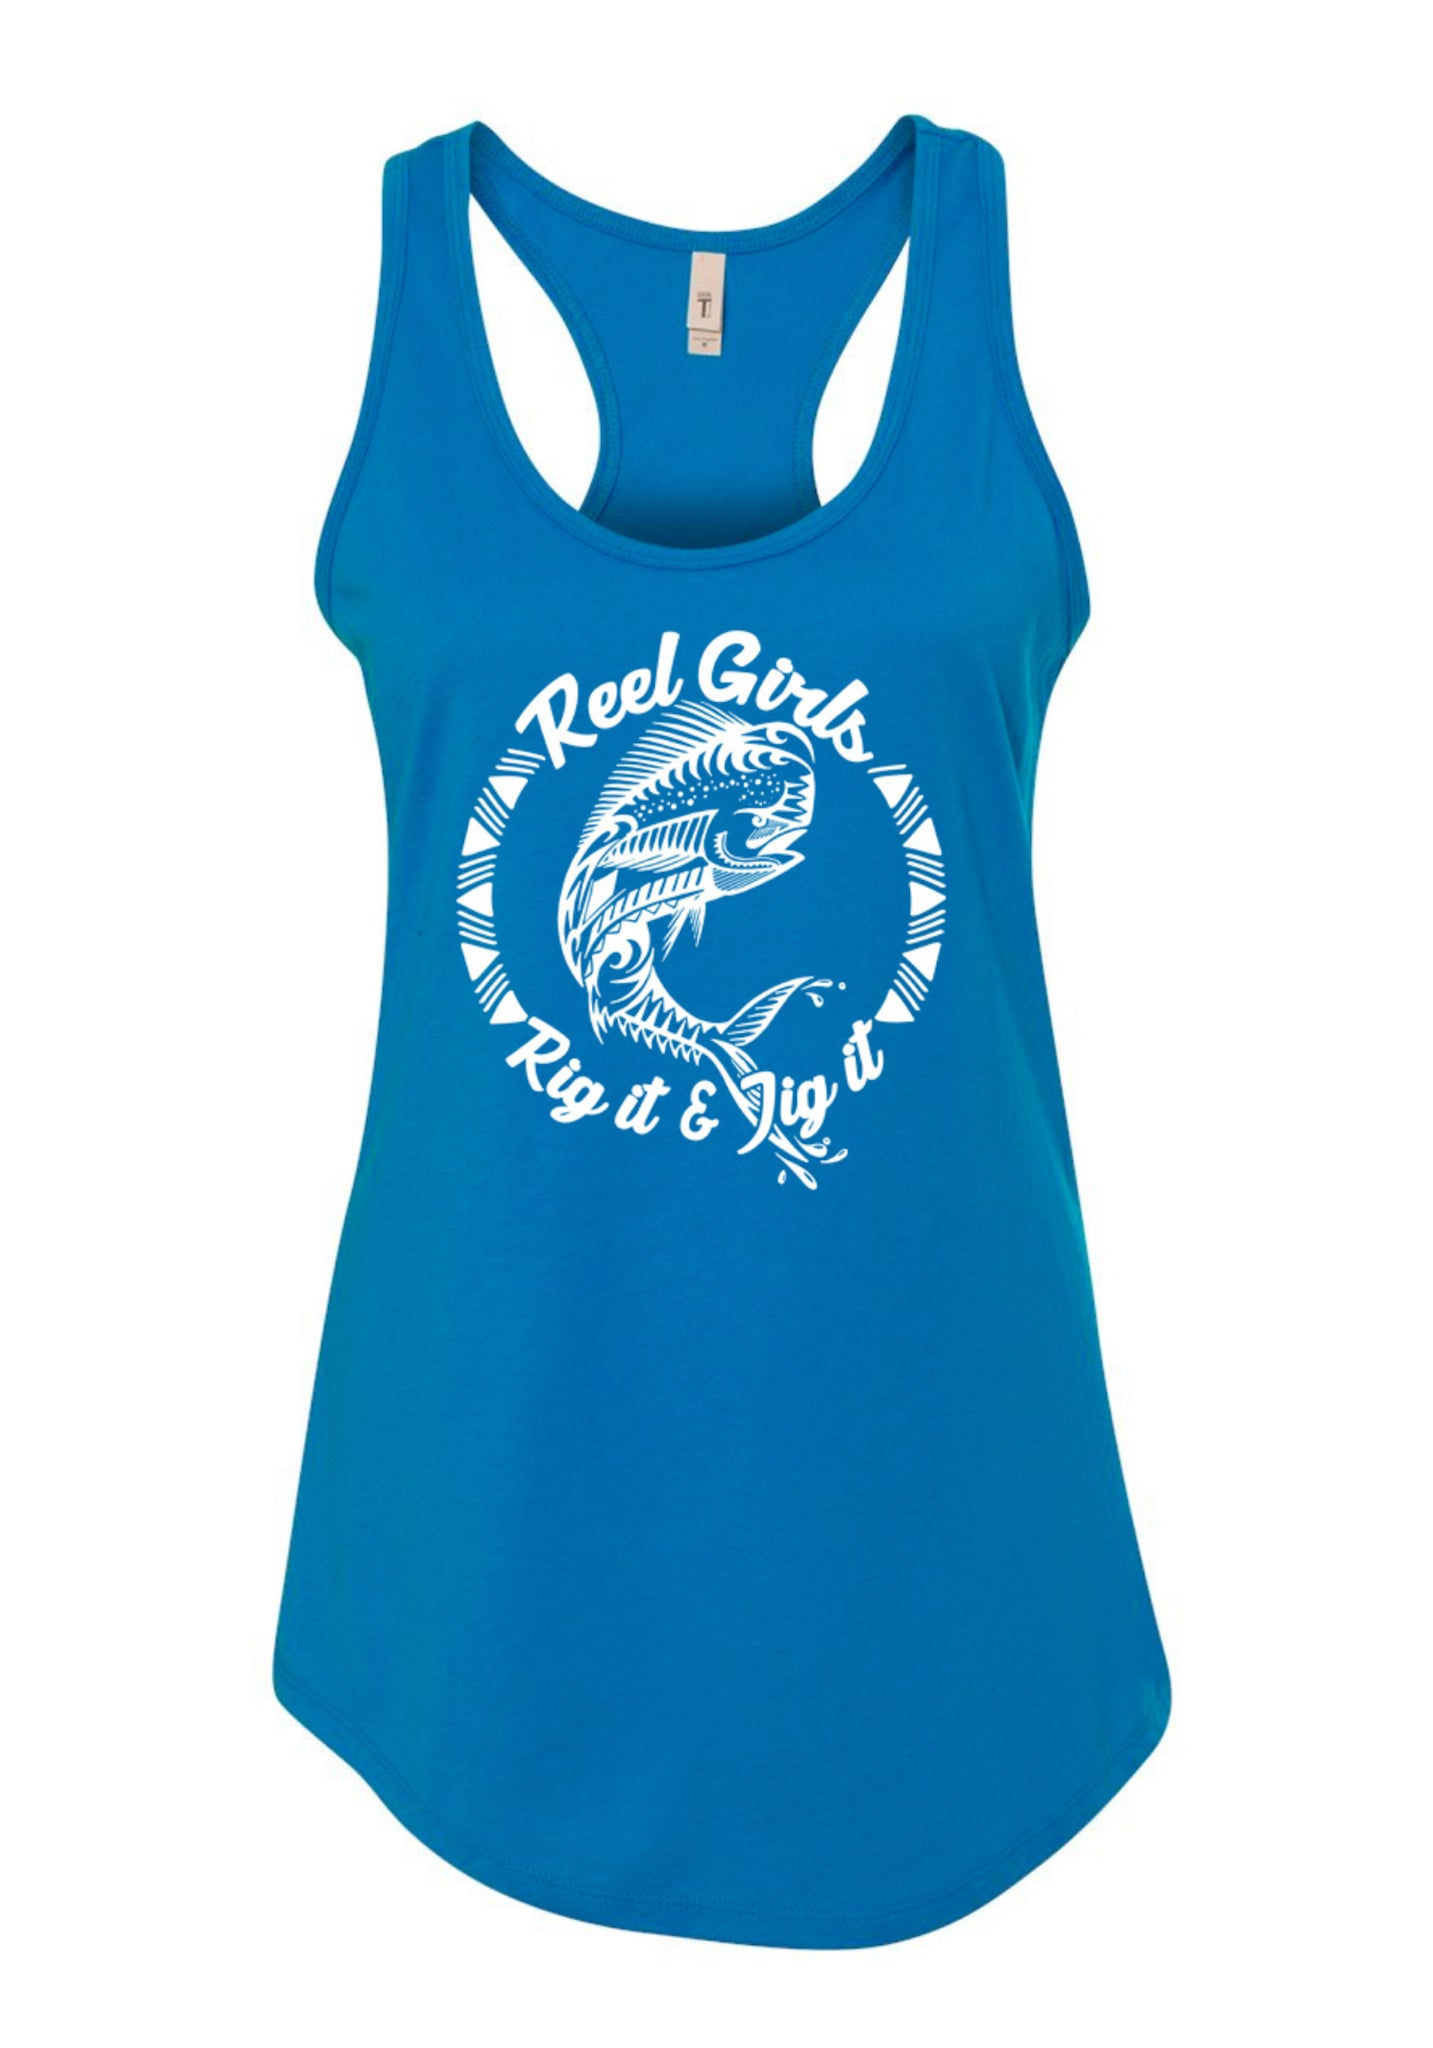 Mahi Rig It & Jig It Tribal Racerback Tank Top - Blue with White - Destin Outdoors